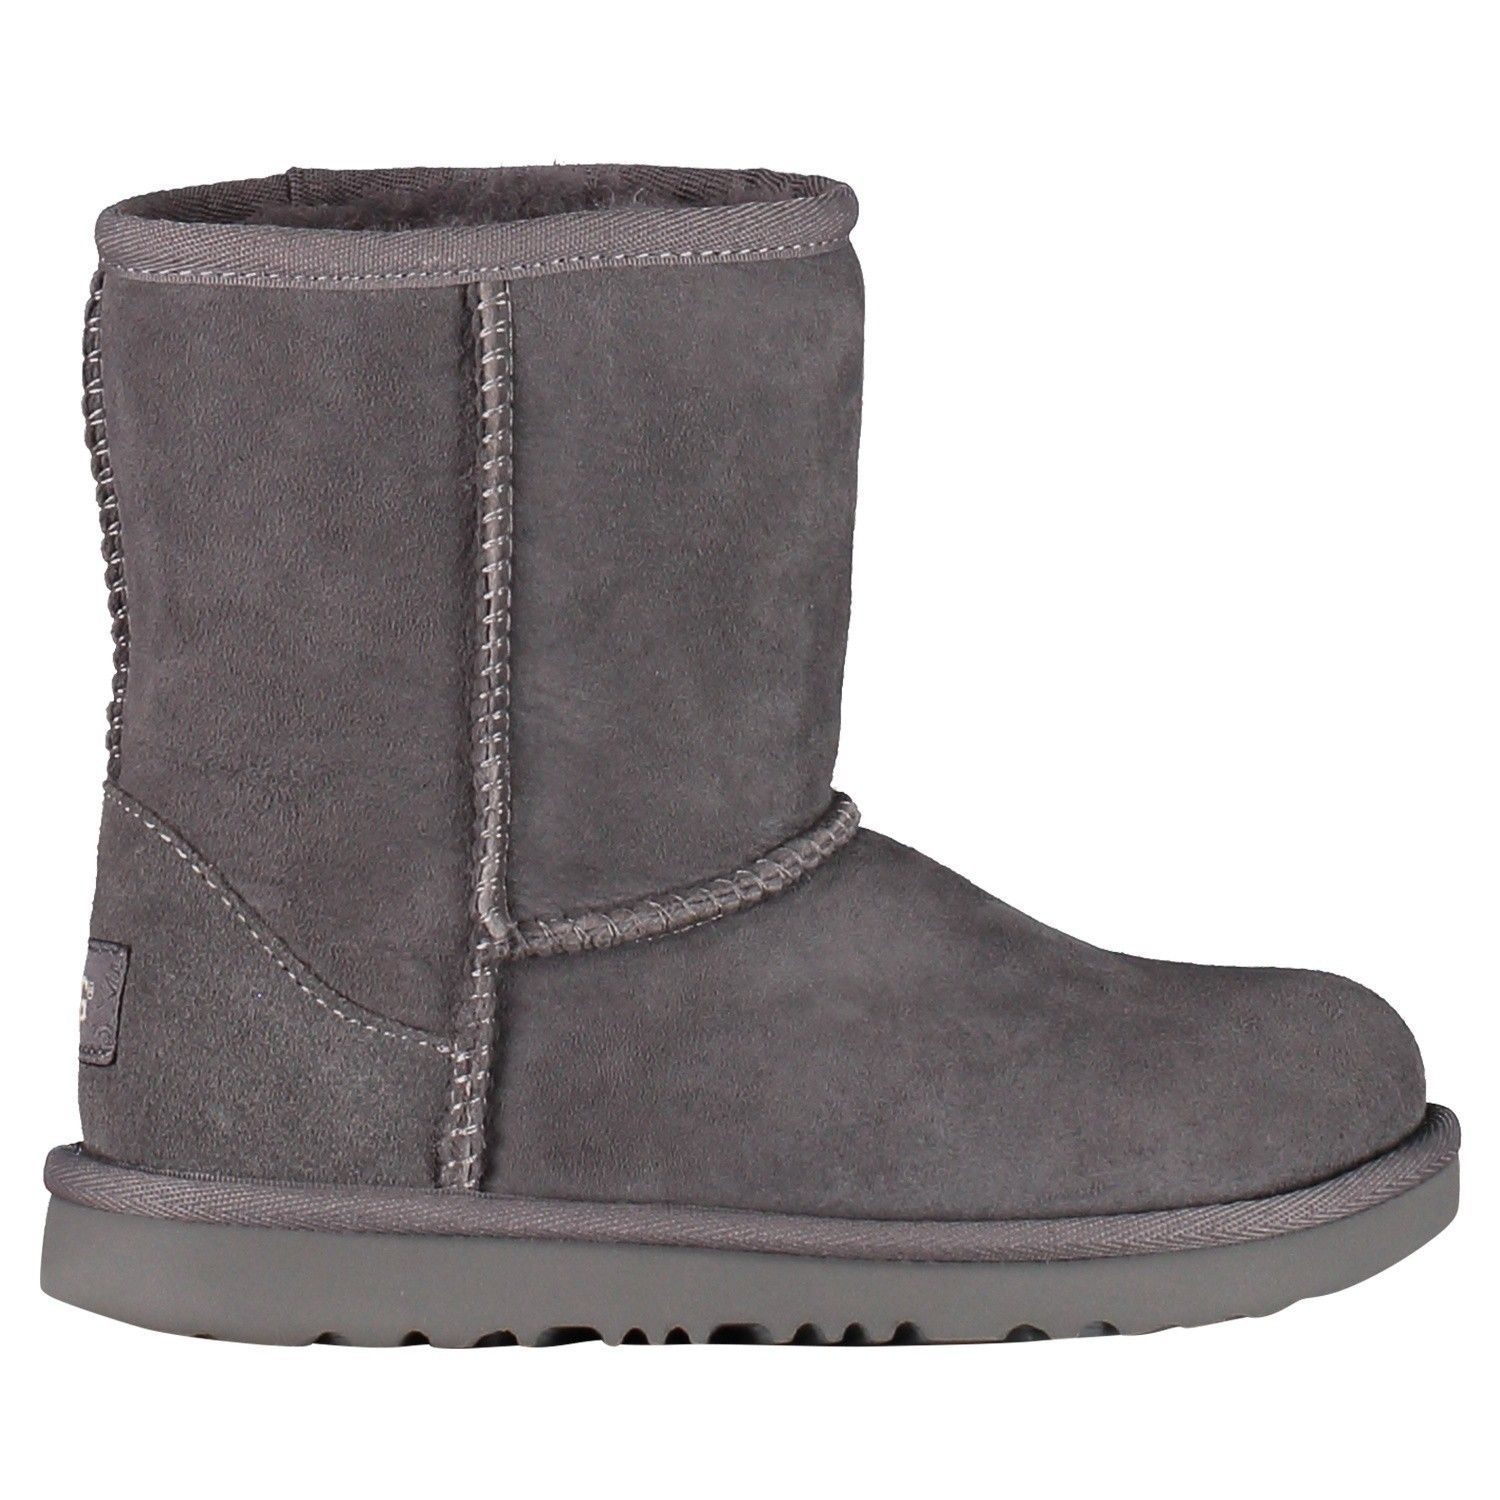 Picture of Ugg 1017703 kids boots grey